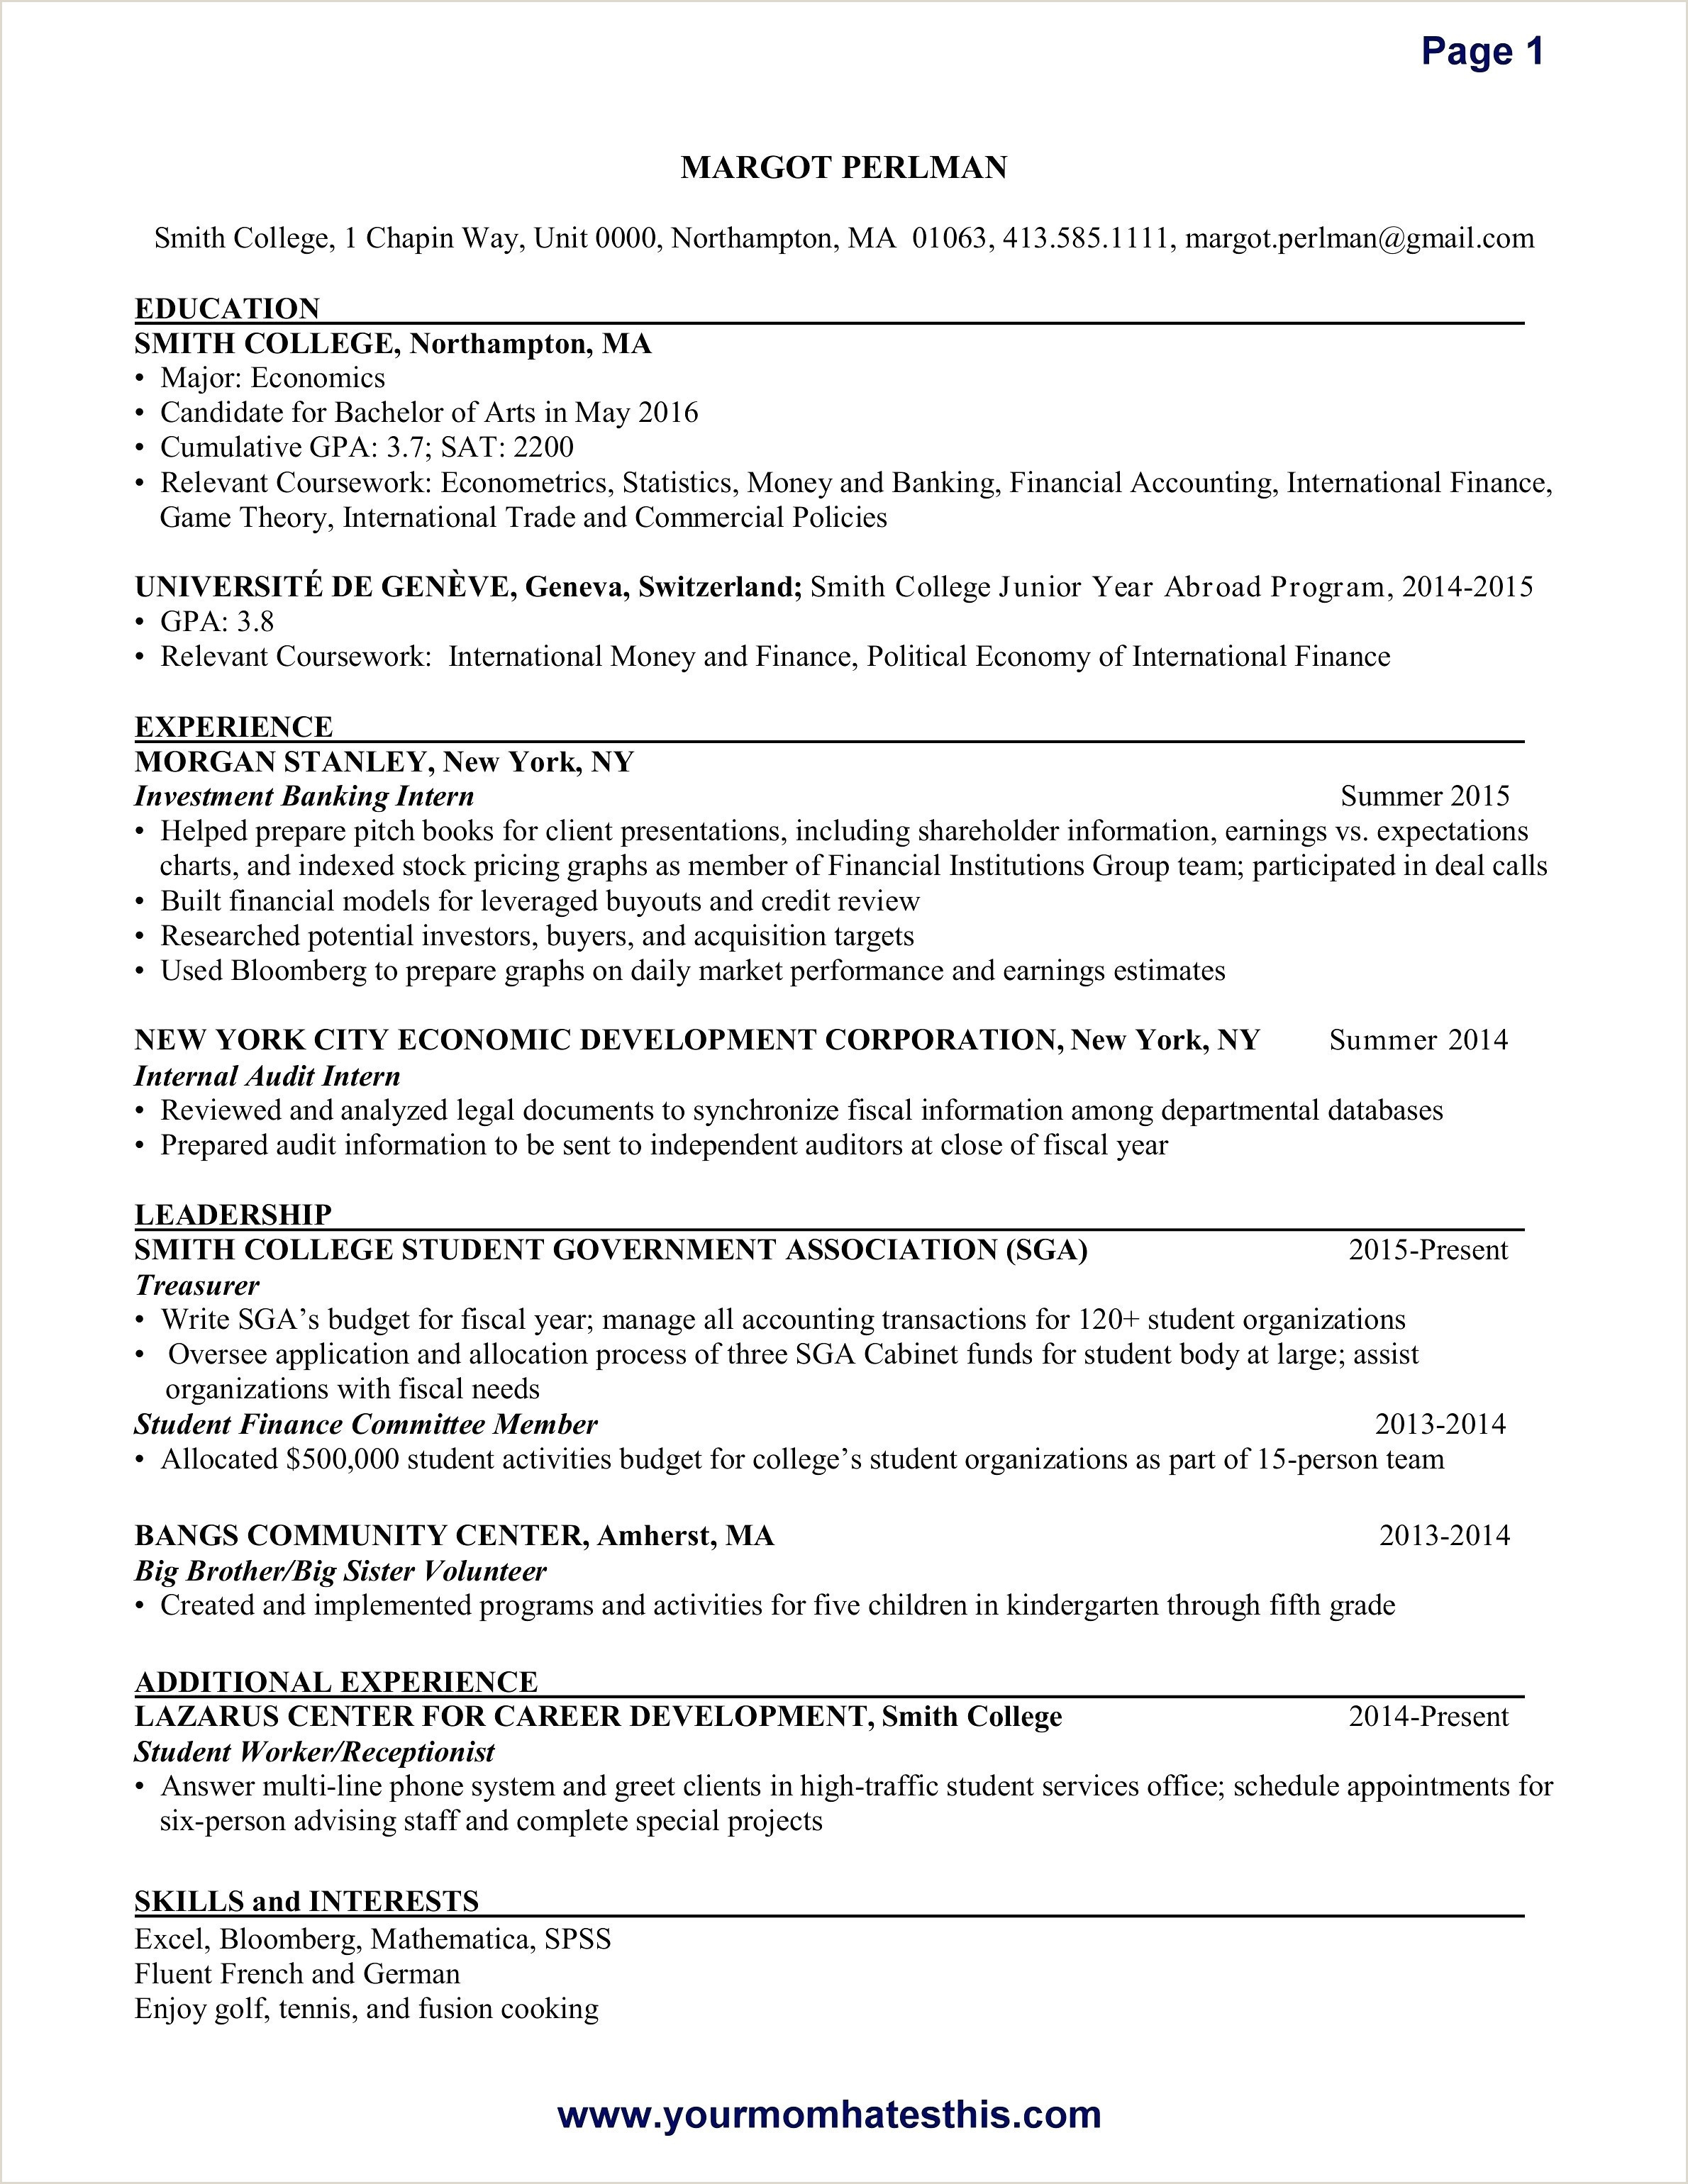 Cover Letter Exaple Best Experience Letter Application New